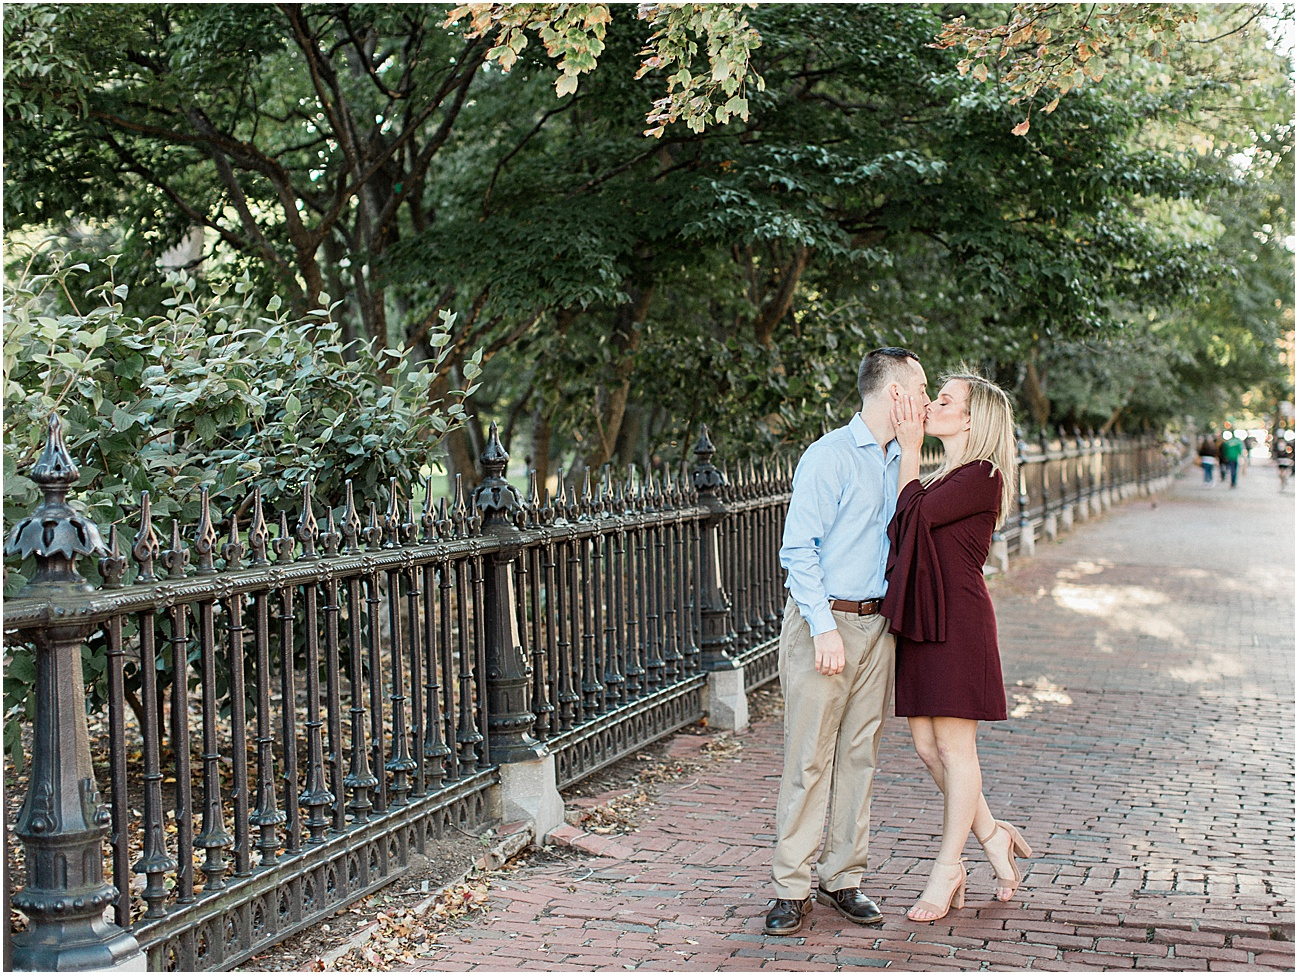 jenny_jared_beacon_hill_acorn_street_seaport_engagement_fall_cape_cod_boston_wedding_photographer_meredith_jane_photography_photo_1530.jpg